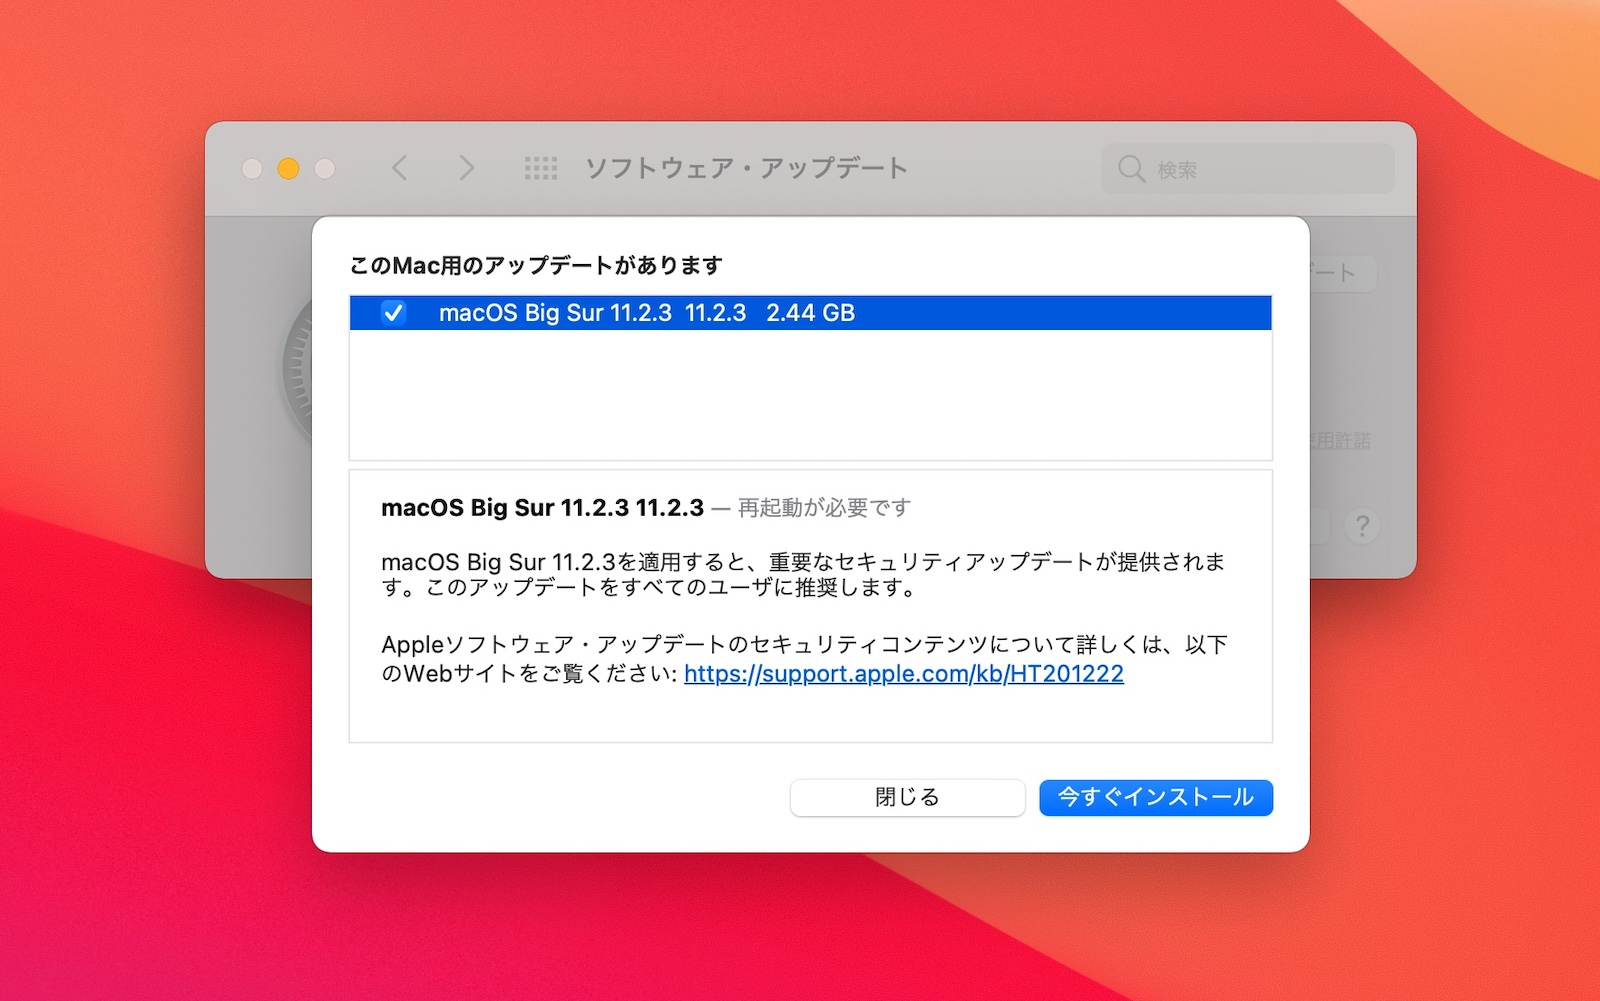 MacOS Big Sur 11 2 3 updatre